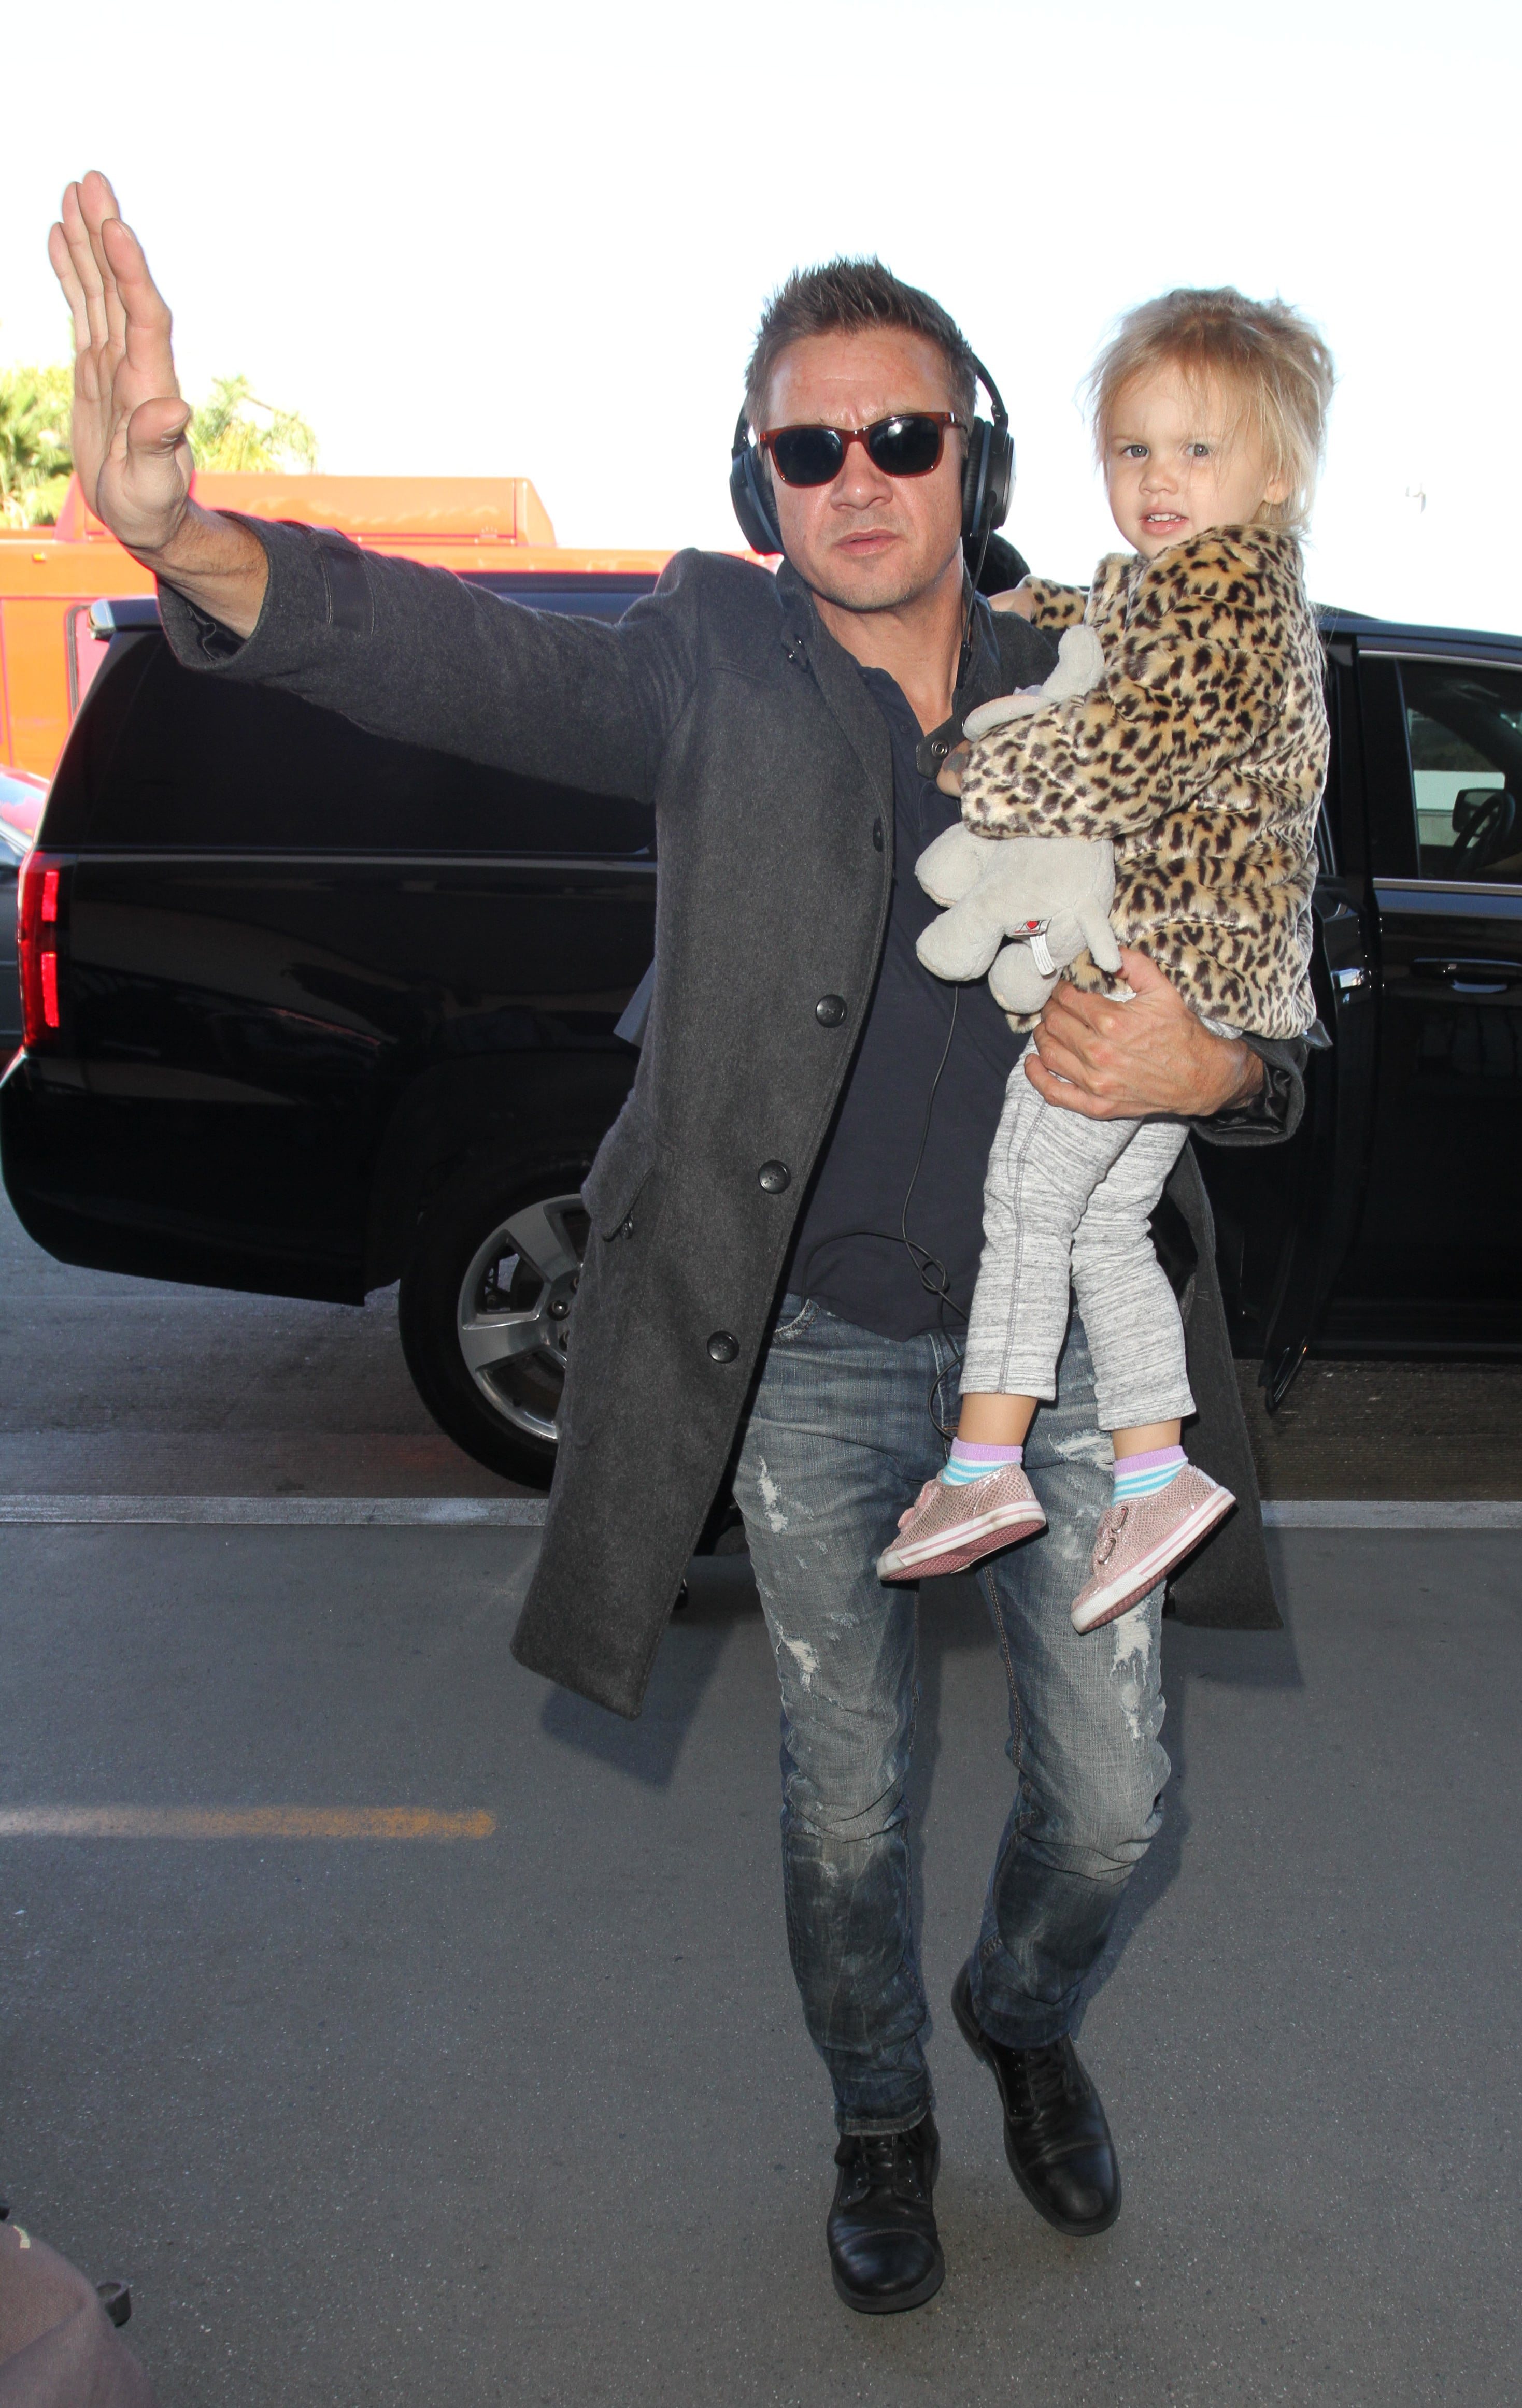 Are Lady Gaga and Jeremy Renner Having a Bad Romance? - Jetss